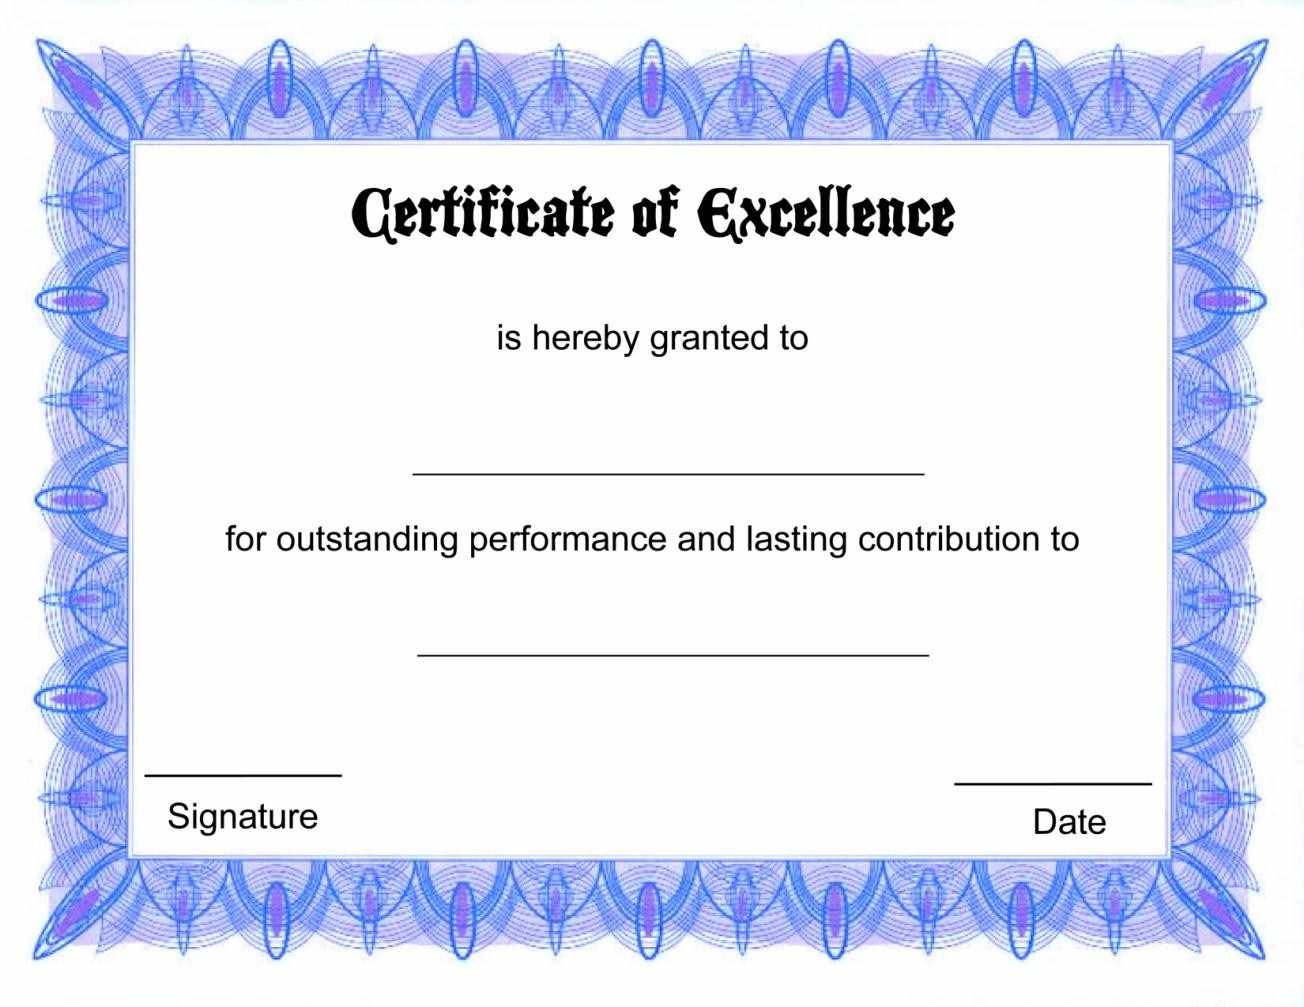 Free Certificate Template Download Drfse  Free Voucher Template Downloads